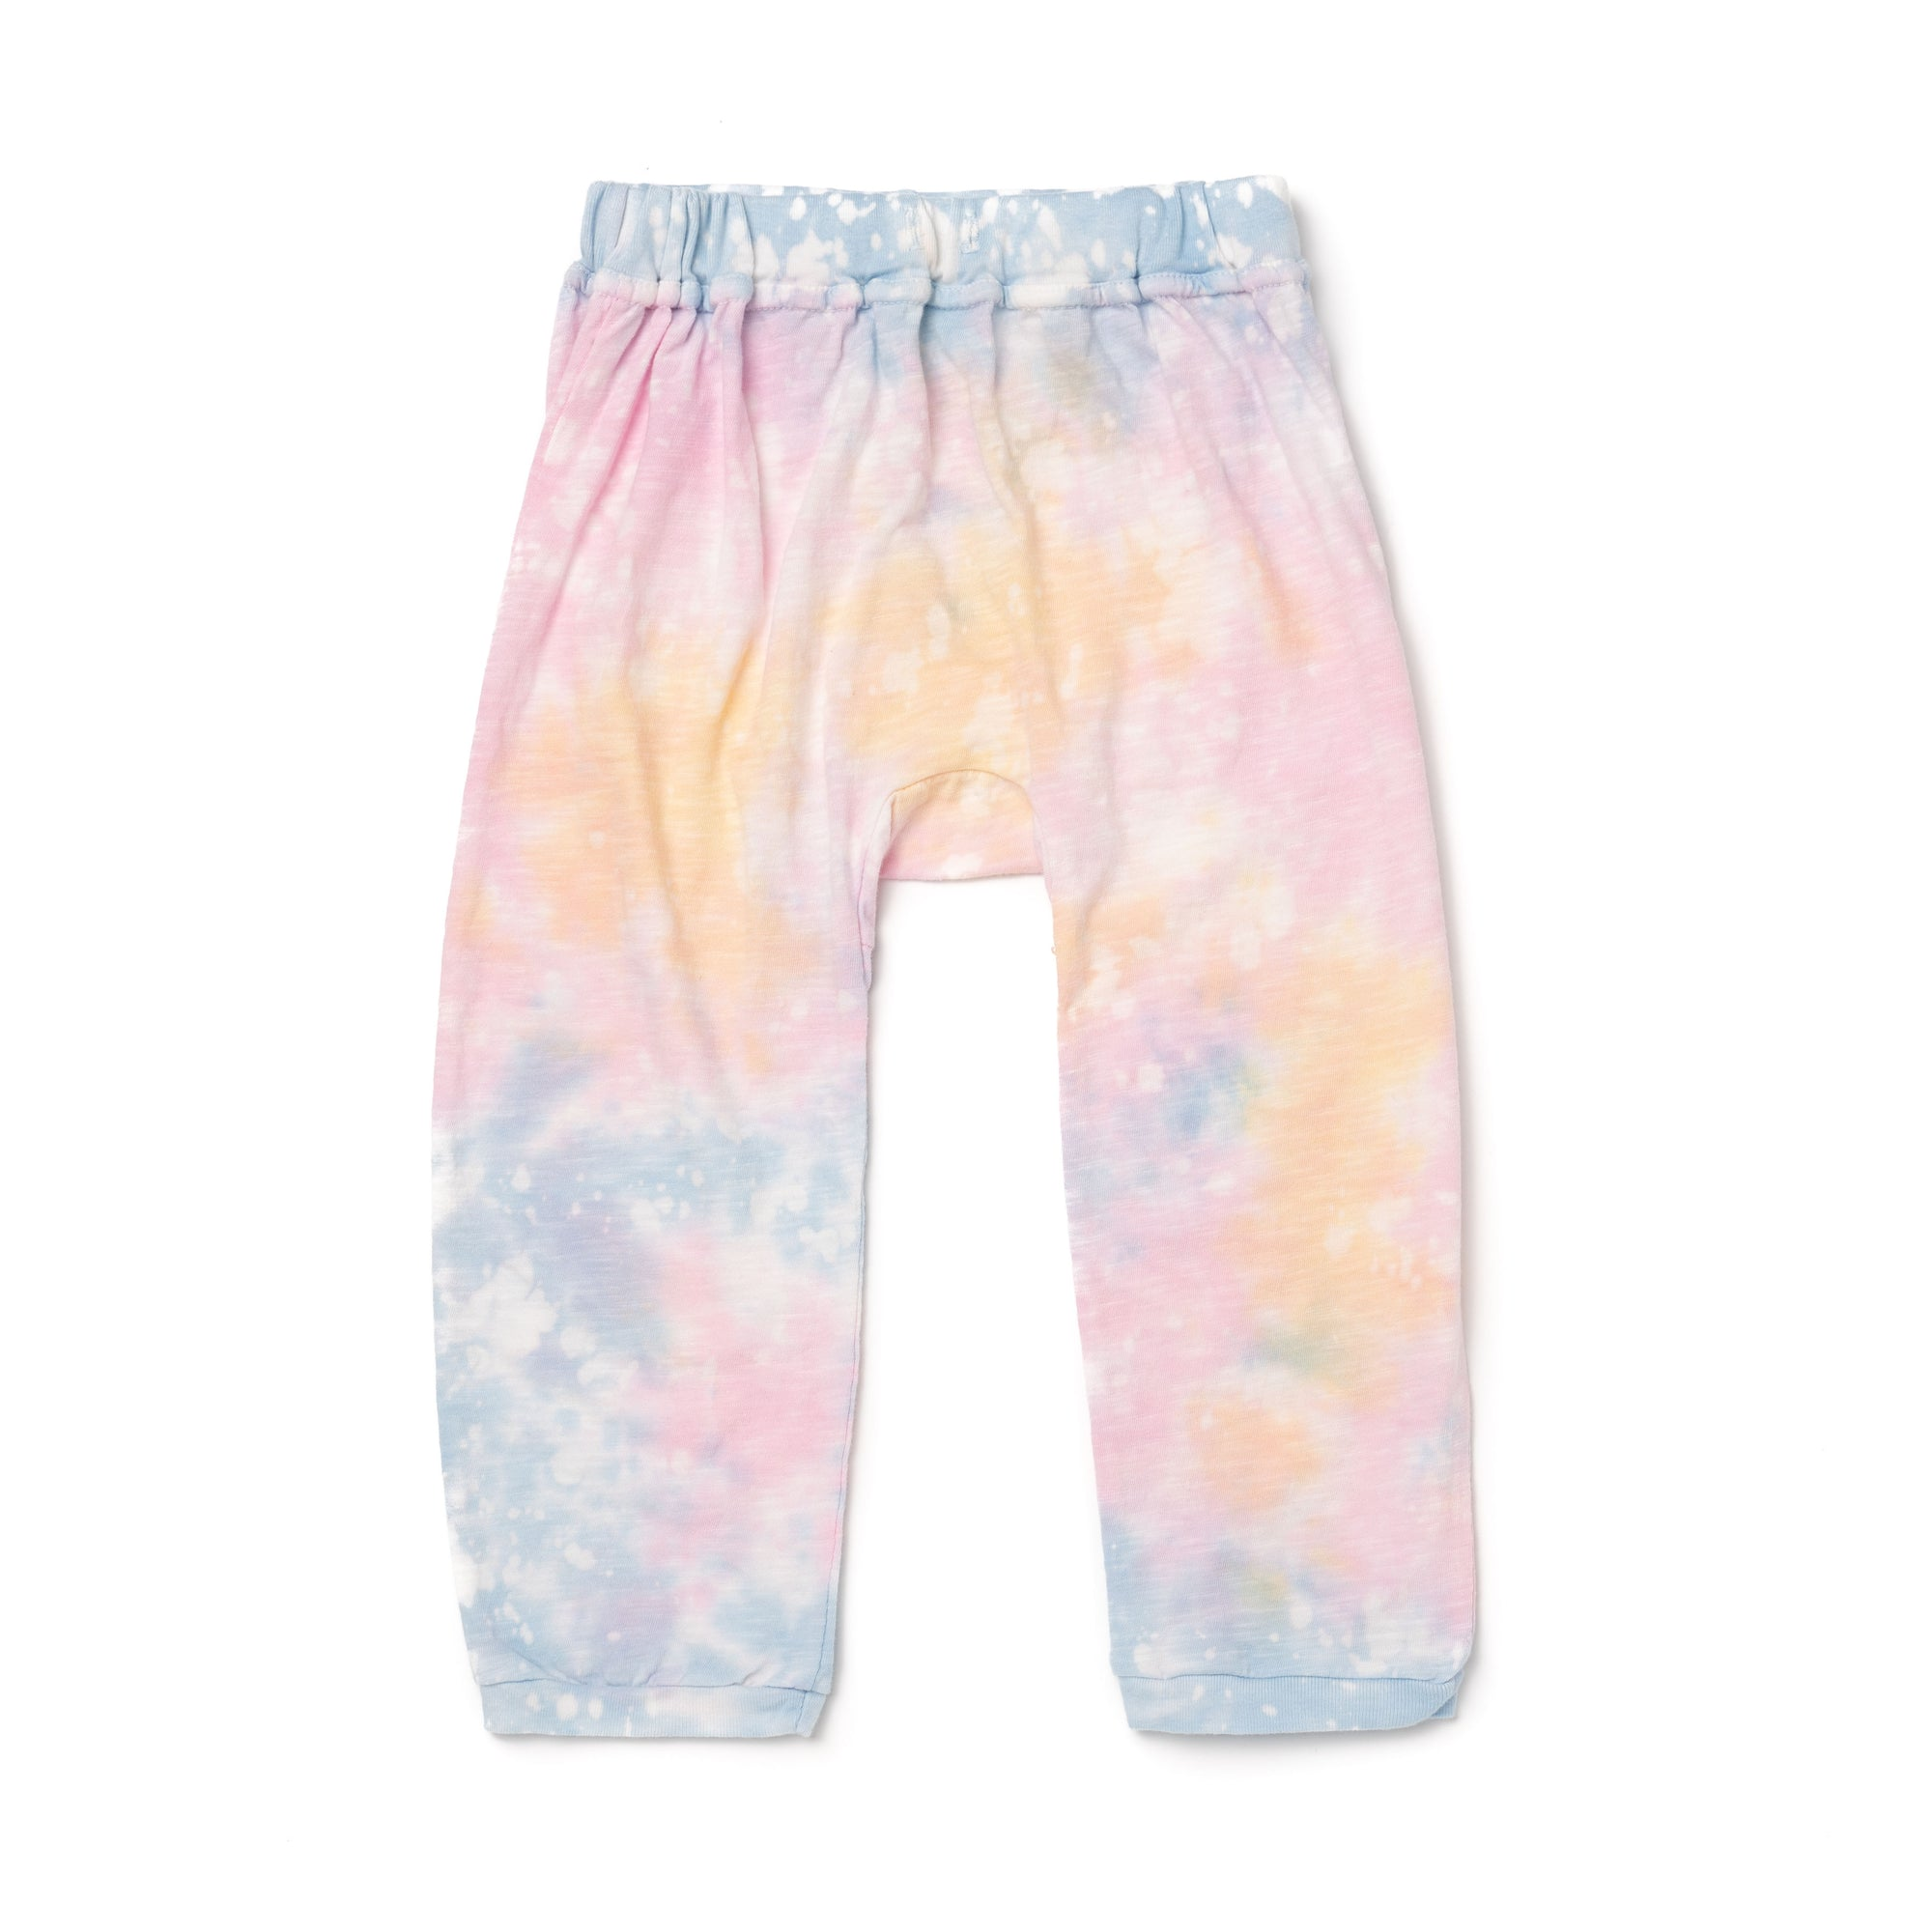 Shaved Ice Tie Dye Harem Pants